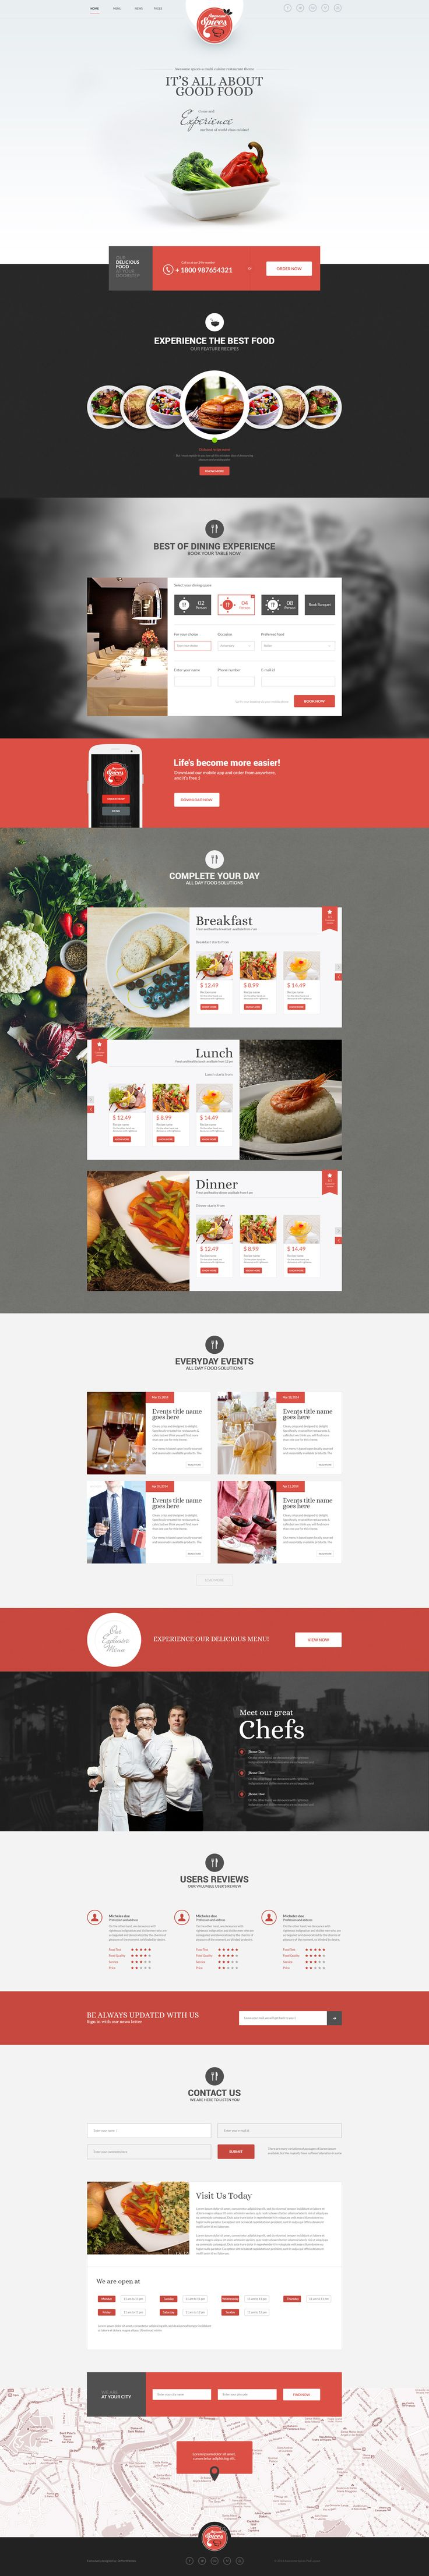 Awesome Spice-One Page Restaurant Website. Rstaurant website design layout. Inspirational UX/UI design samples. Visit us at: www.sodapopmedia.com #WebDesign #UX #UI #WebPageLayout #DigitalDesign #Web #Website #Design #Layout